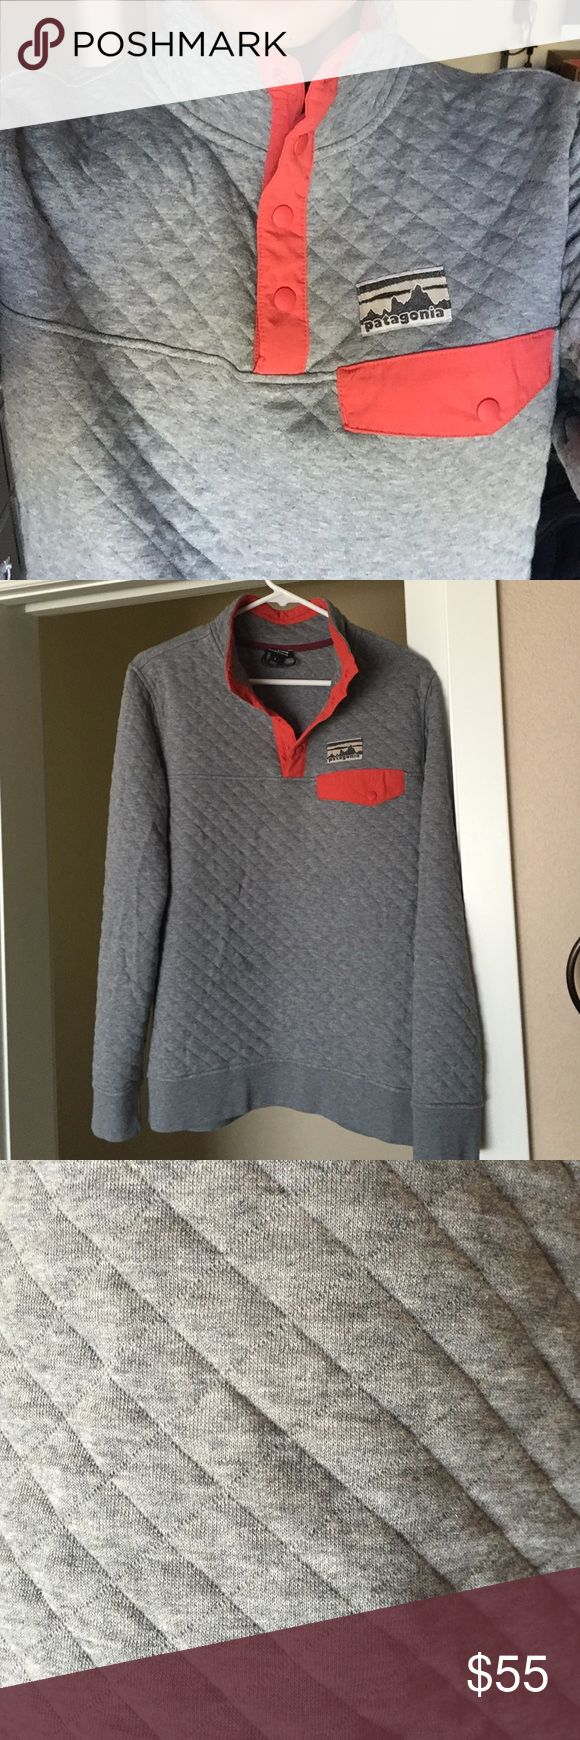 Patagonia women's cotton quilt snap-t pullover Hey guys! Worn this maybe twice. Too big on me. There is a tiny dirt stain or something, but barely noticeable (and will probably wash out). Make an offer! Patagonia Sweaters